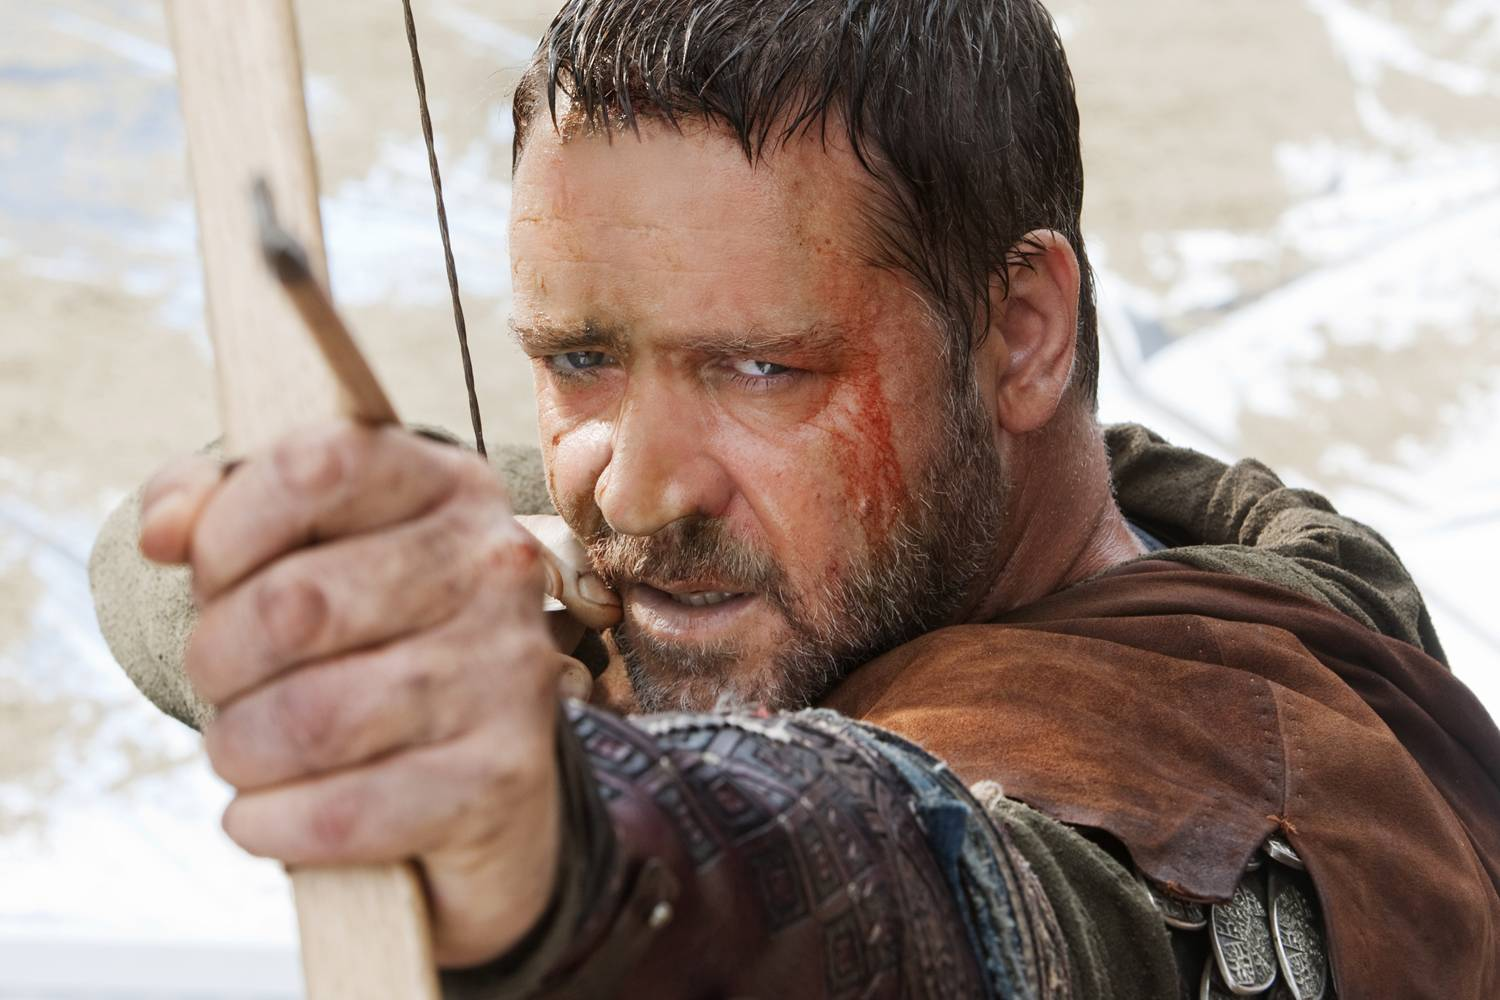 Tv home movie review robin hood 2010 movie review robin hood 2010